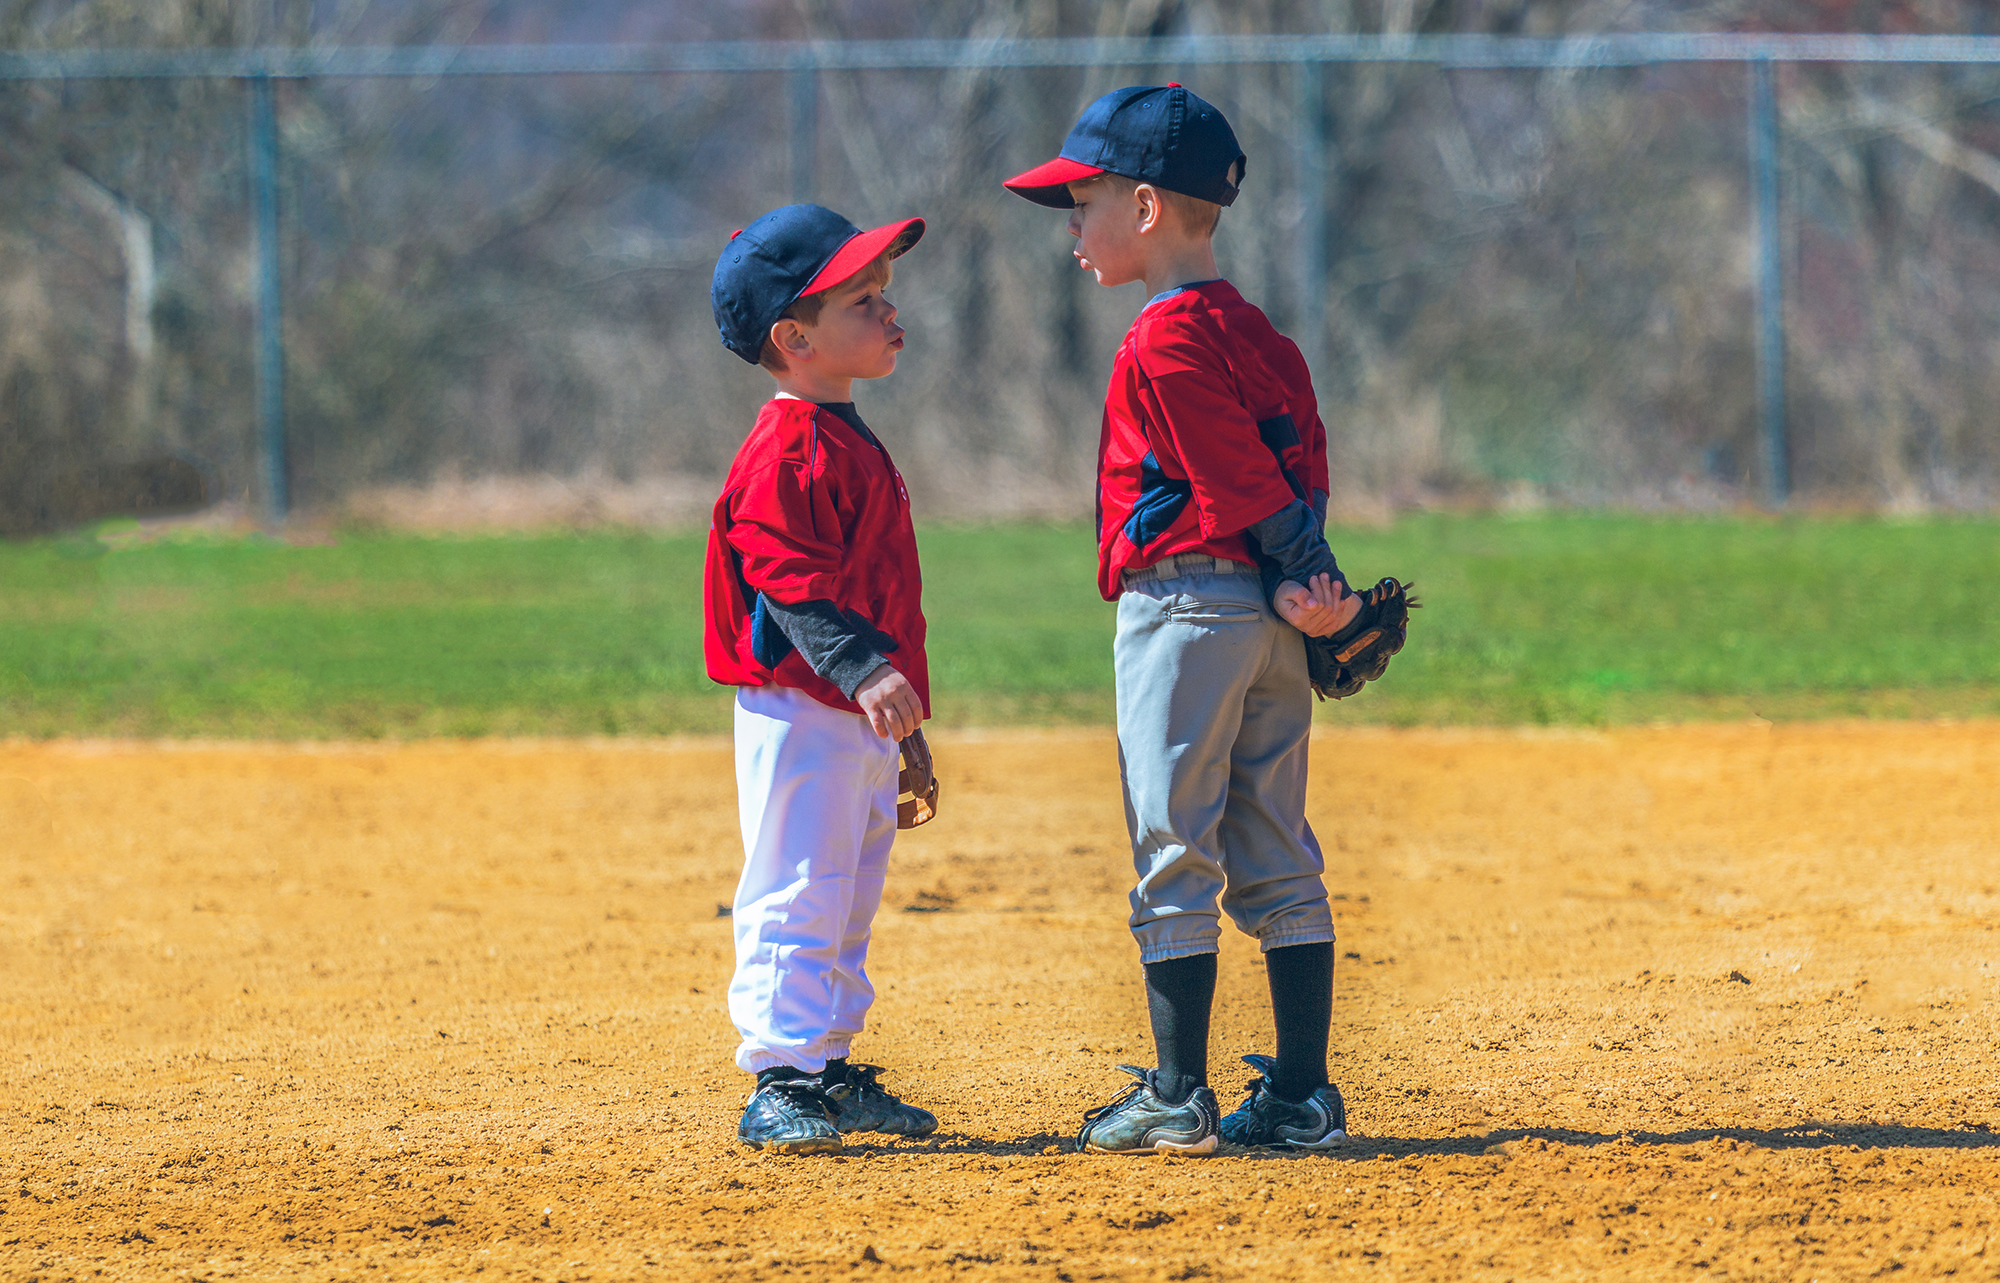 Two boys, unfocused on their baseball game, have fun whistling.